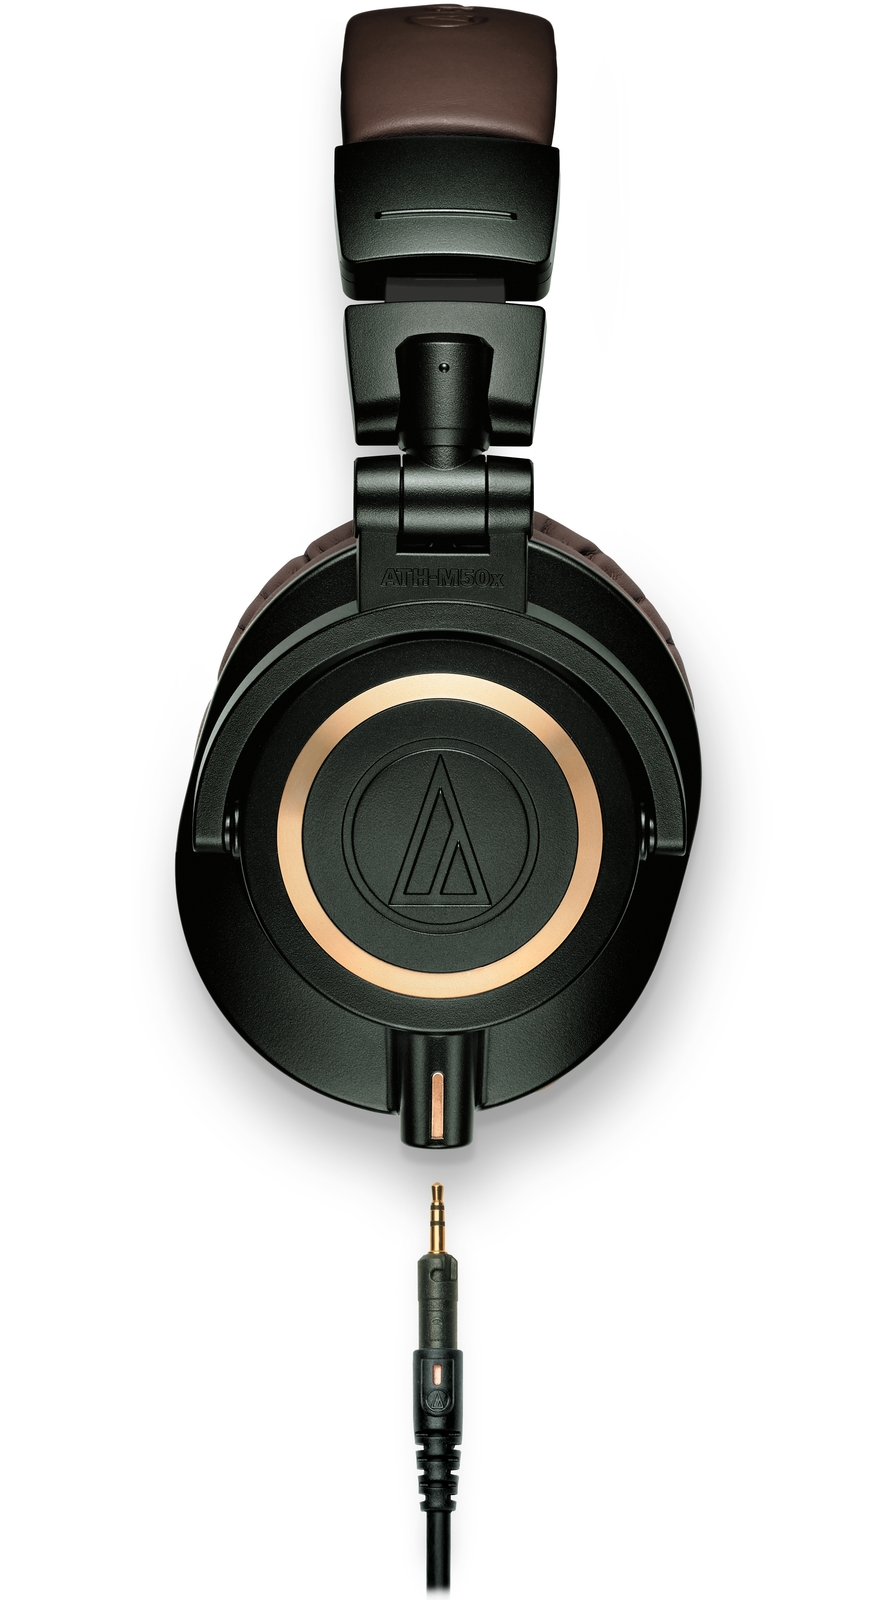 audio technica ath m50x limited edition studio monitors dark green images at mighty ape nz. Black Bedroom Furniture Sets. Home Design Ideas